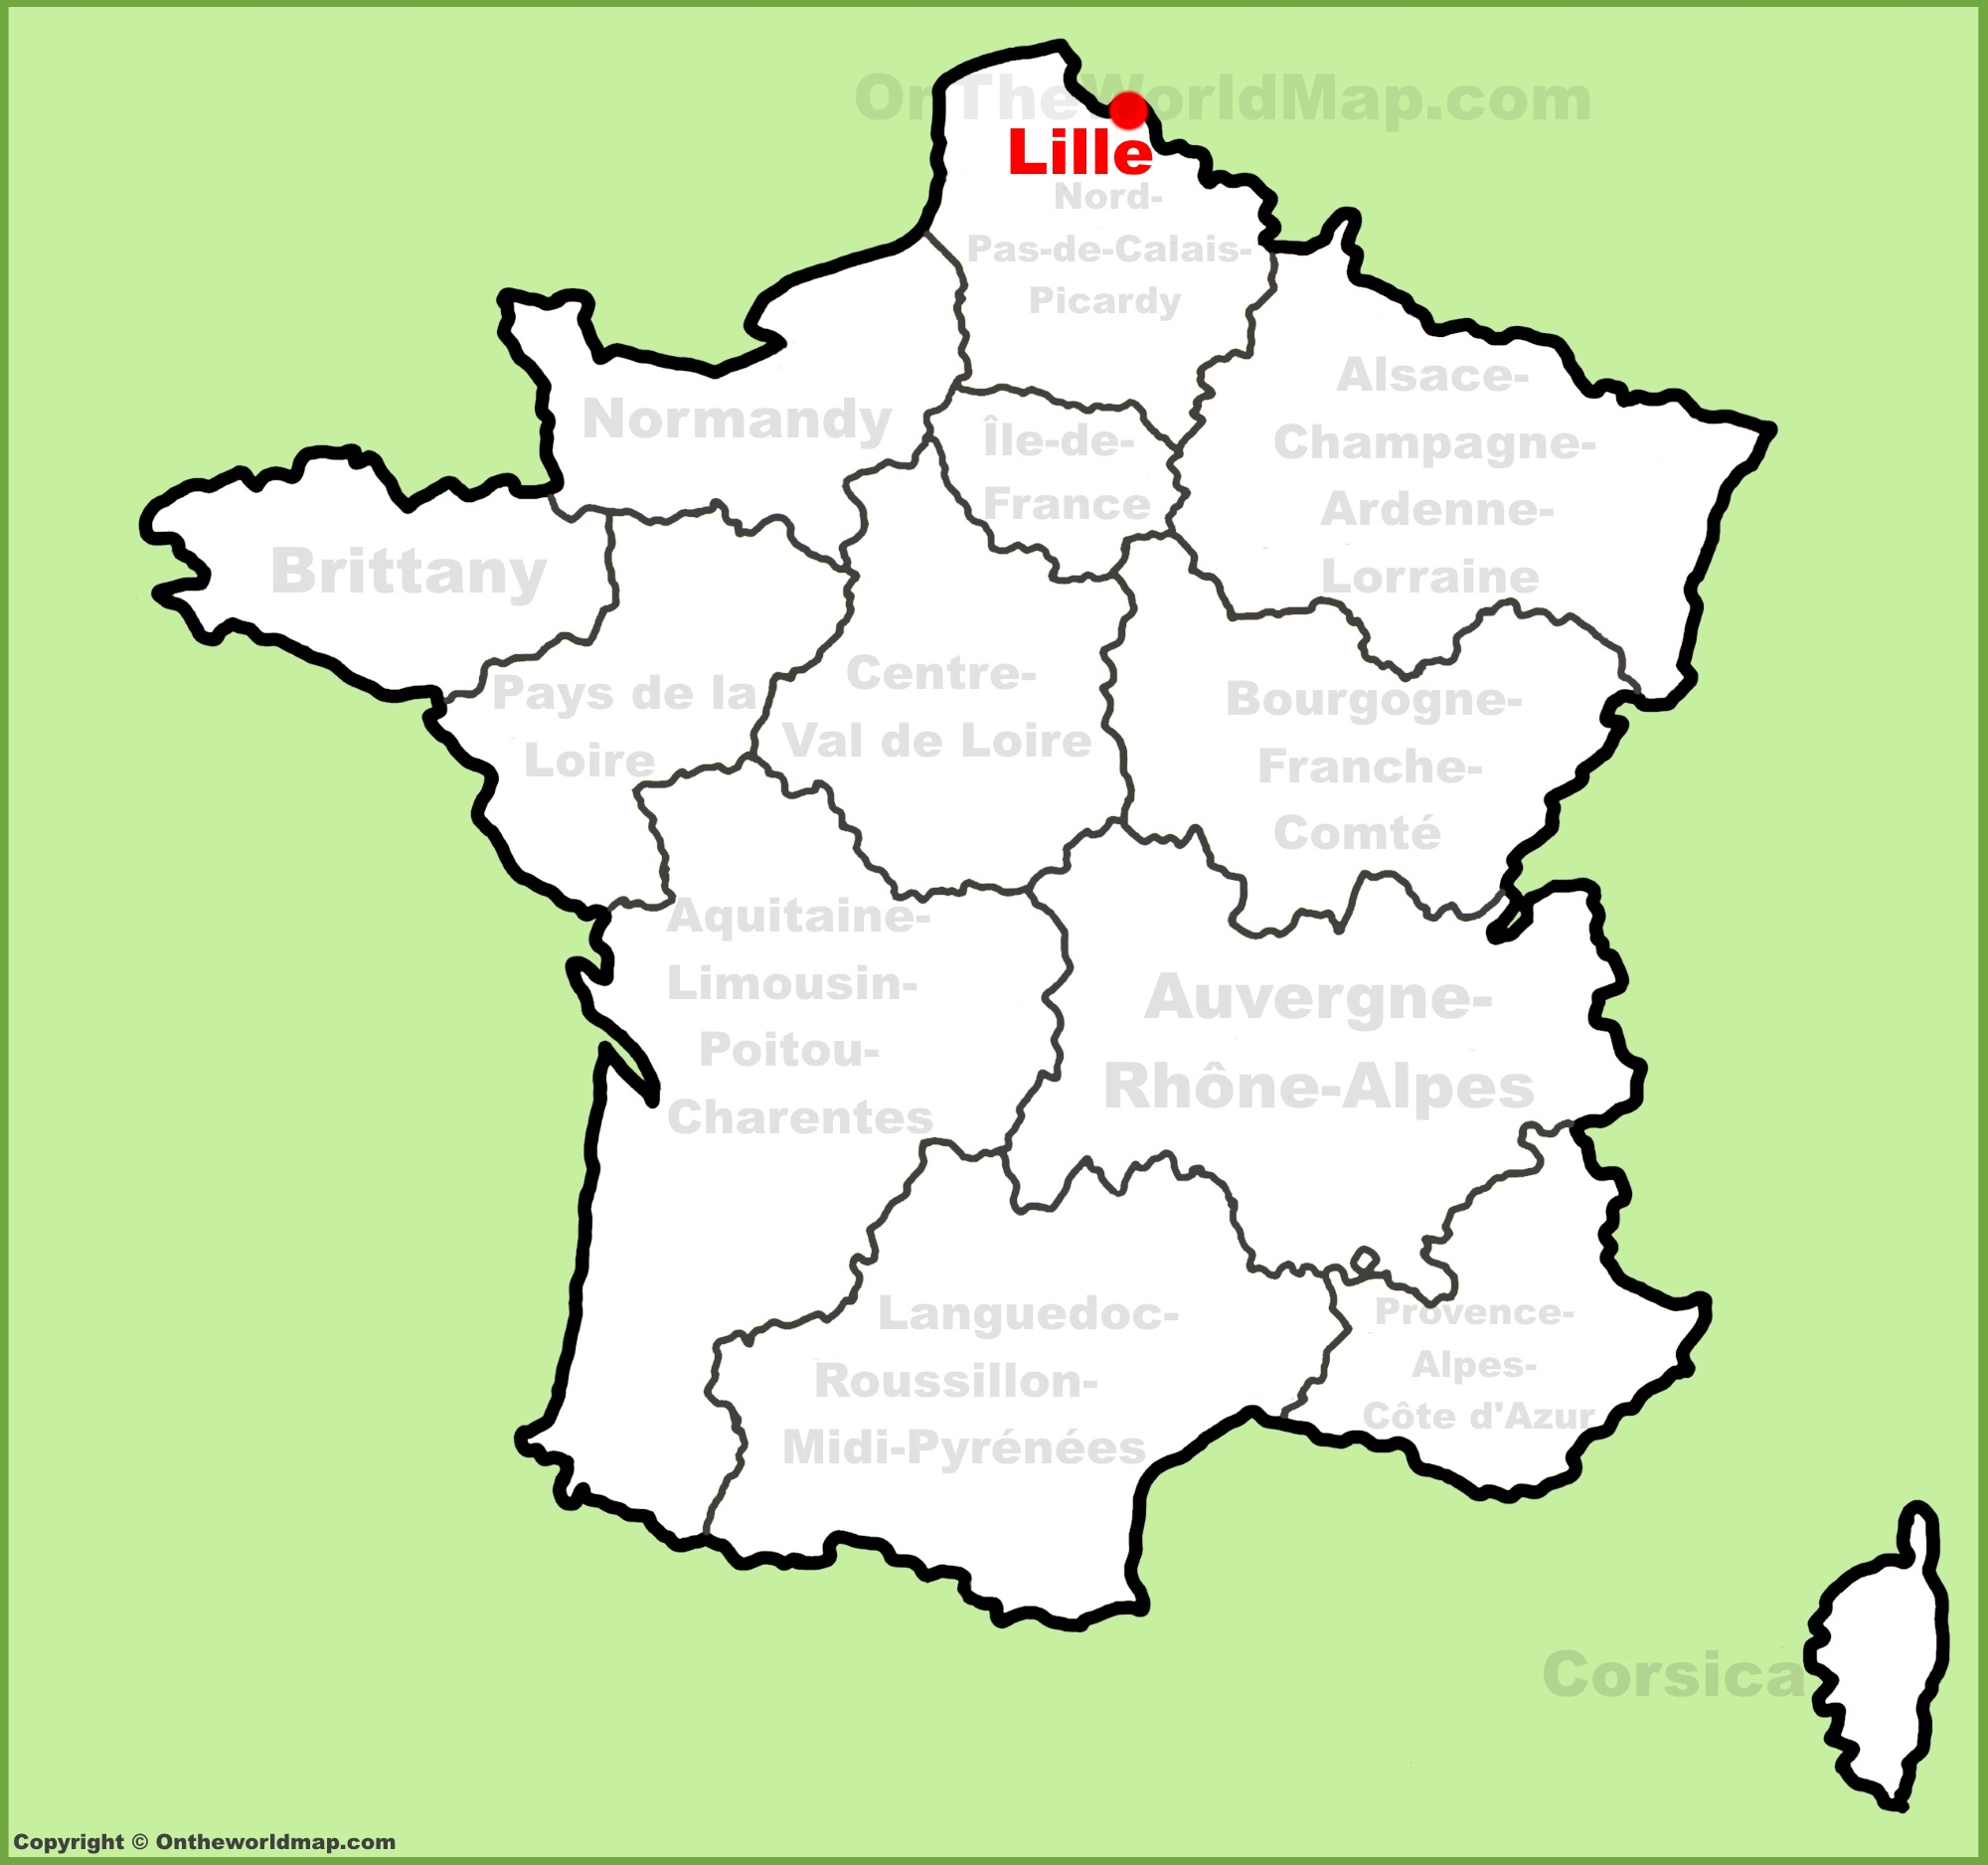 lille location on the france map. Black Bedroom Furniture Sets. Home Design Ideas